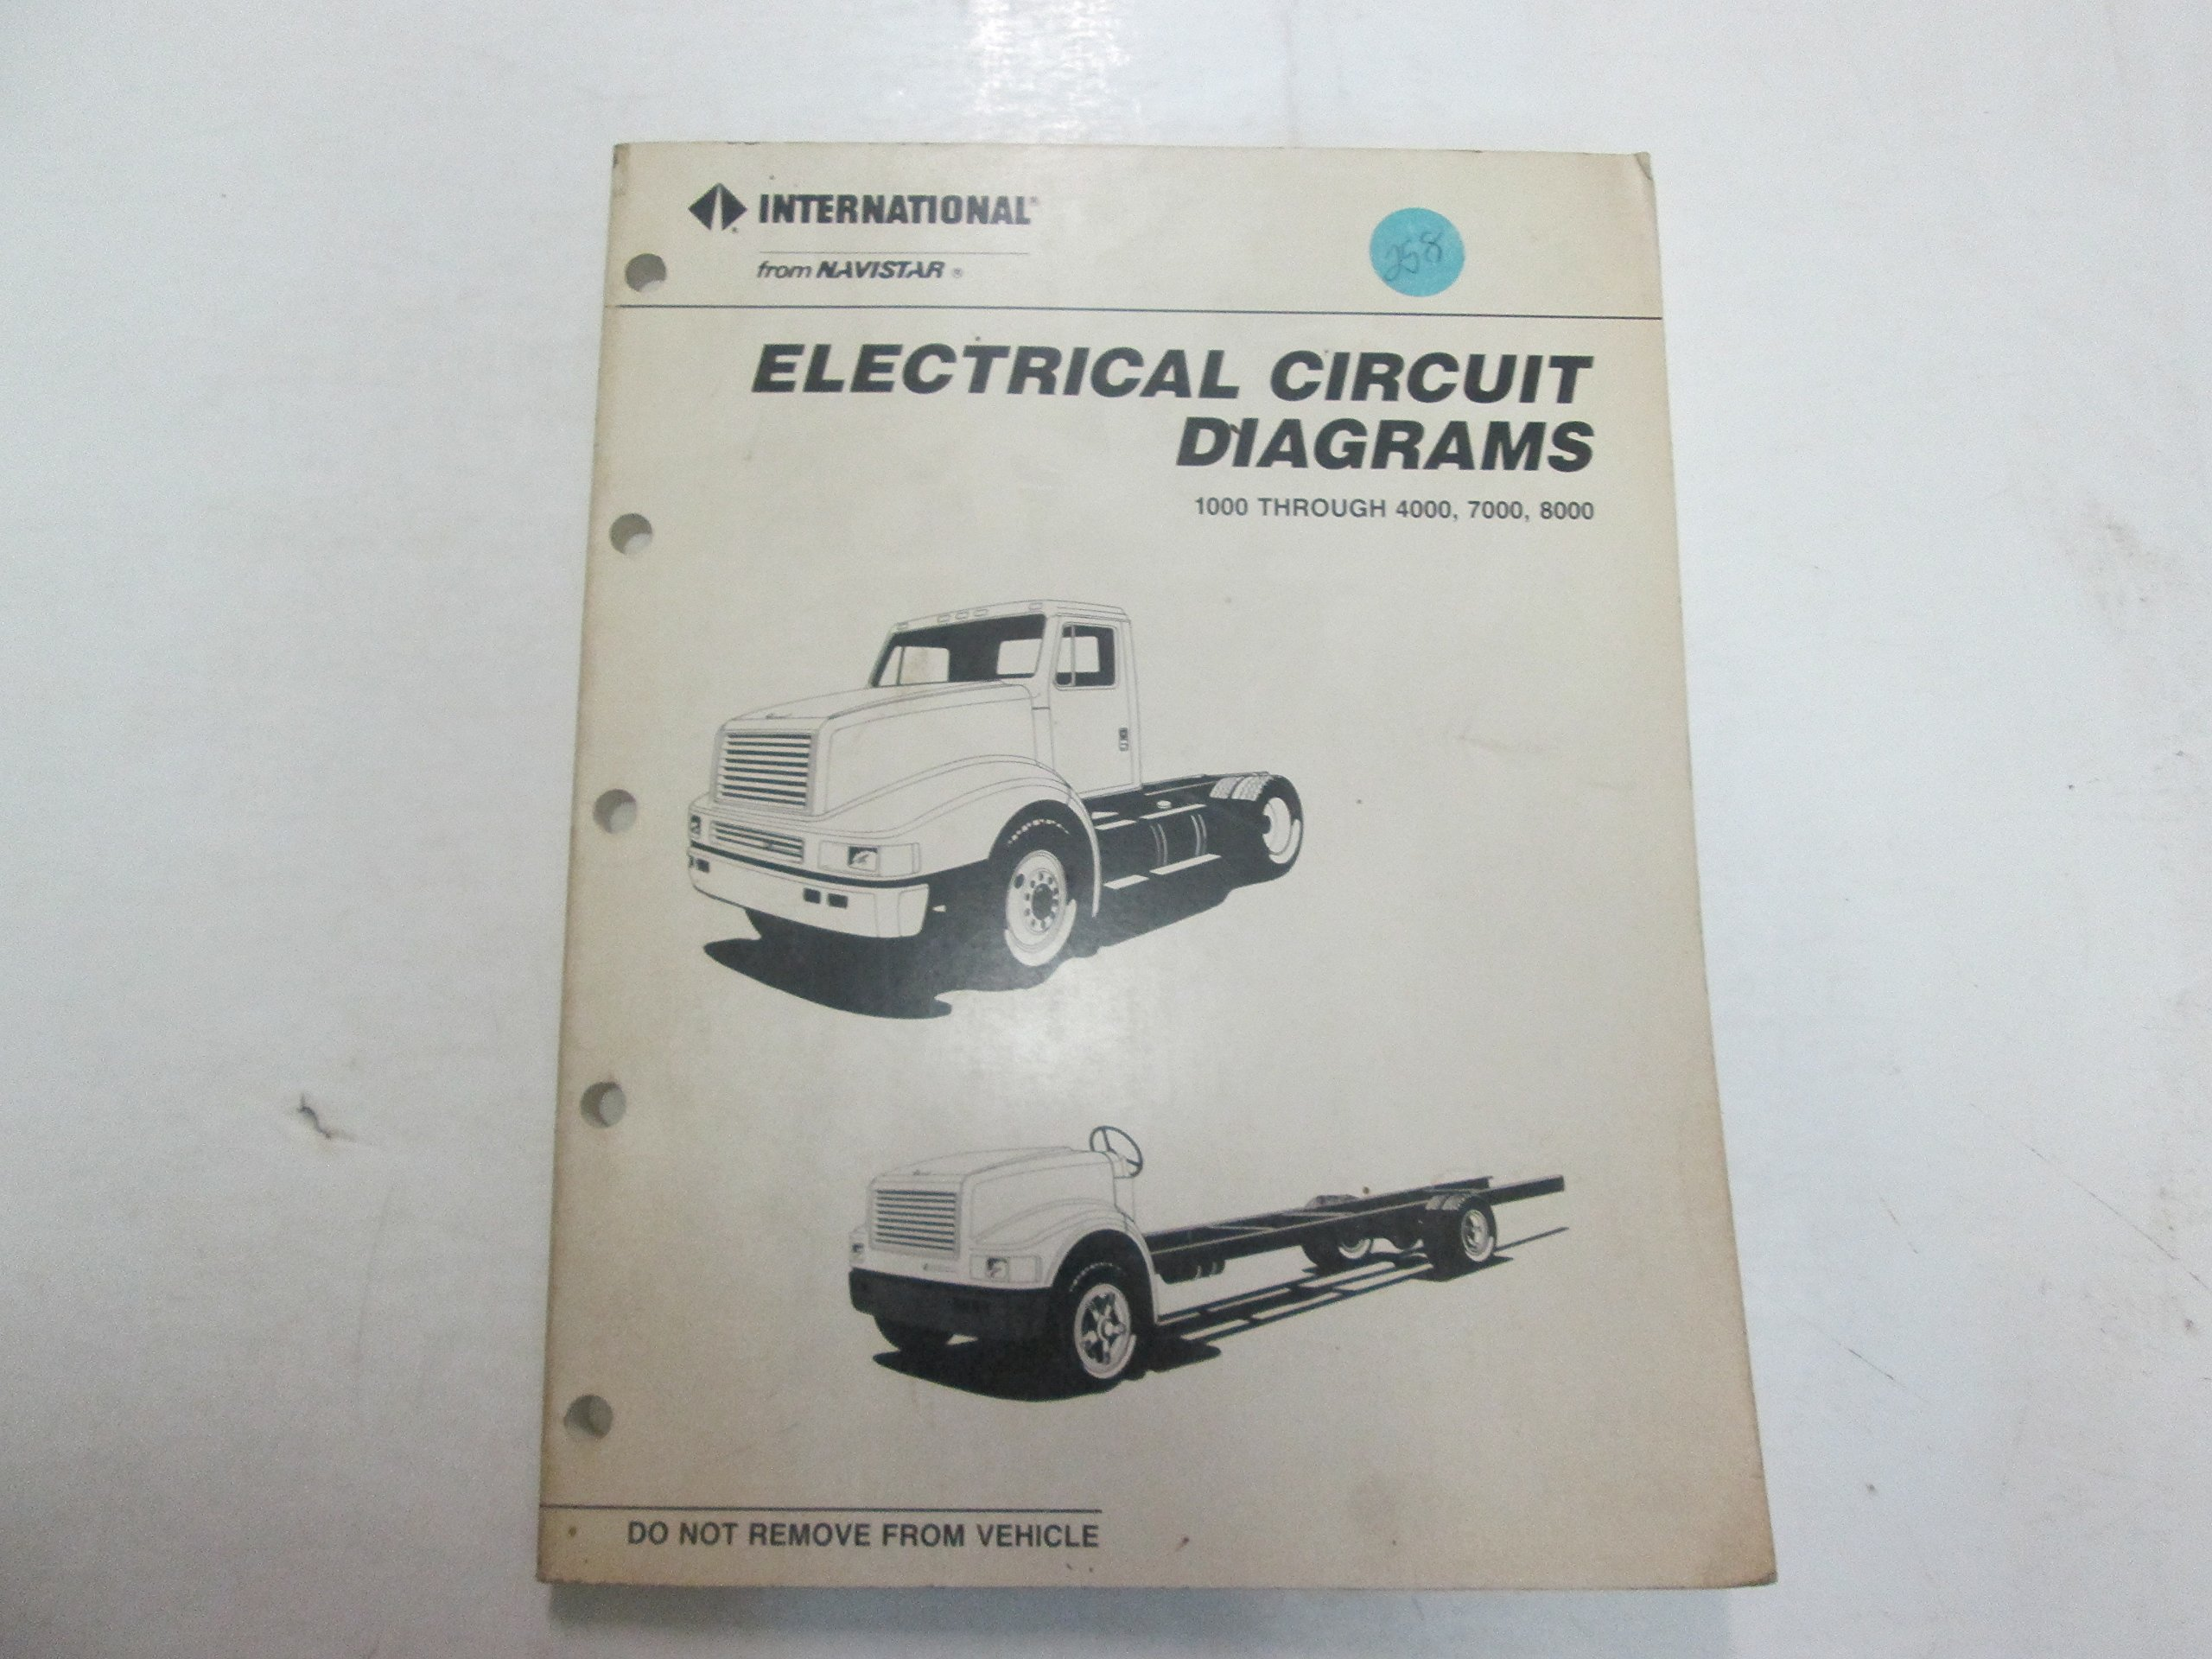 International 1000 4000 7000 8000 Electrical Circuit Diagrams Manual Ford Xh Ute Wiring Diagram Stains Worn Books